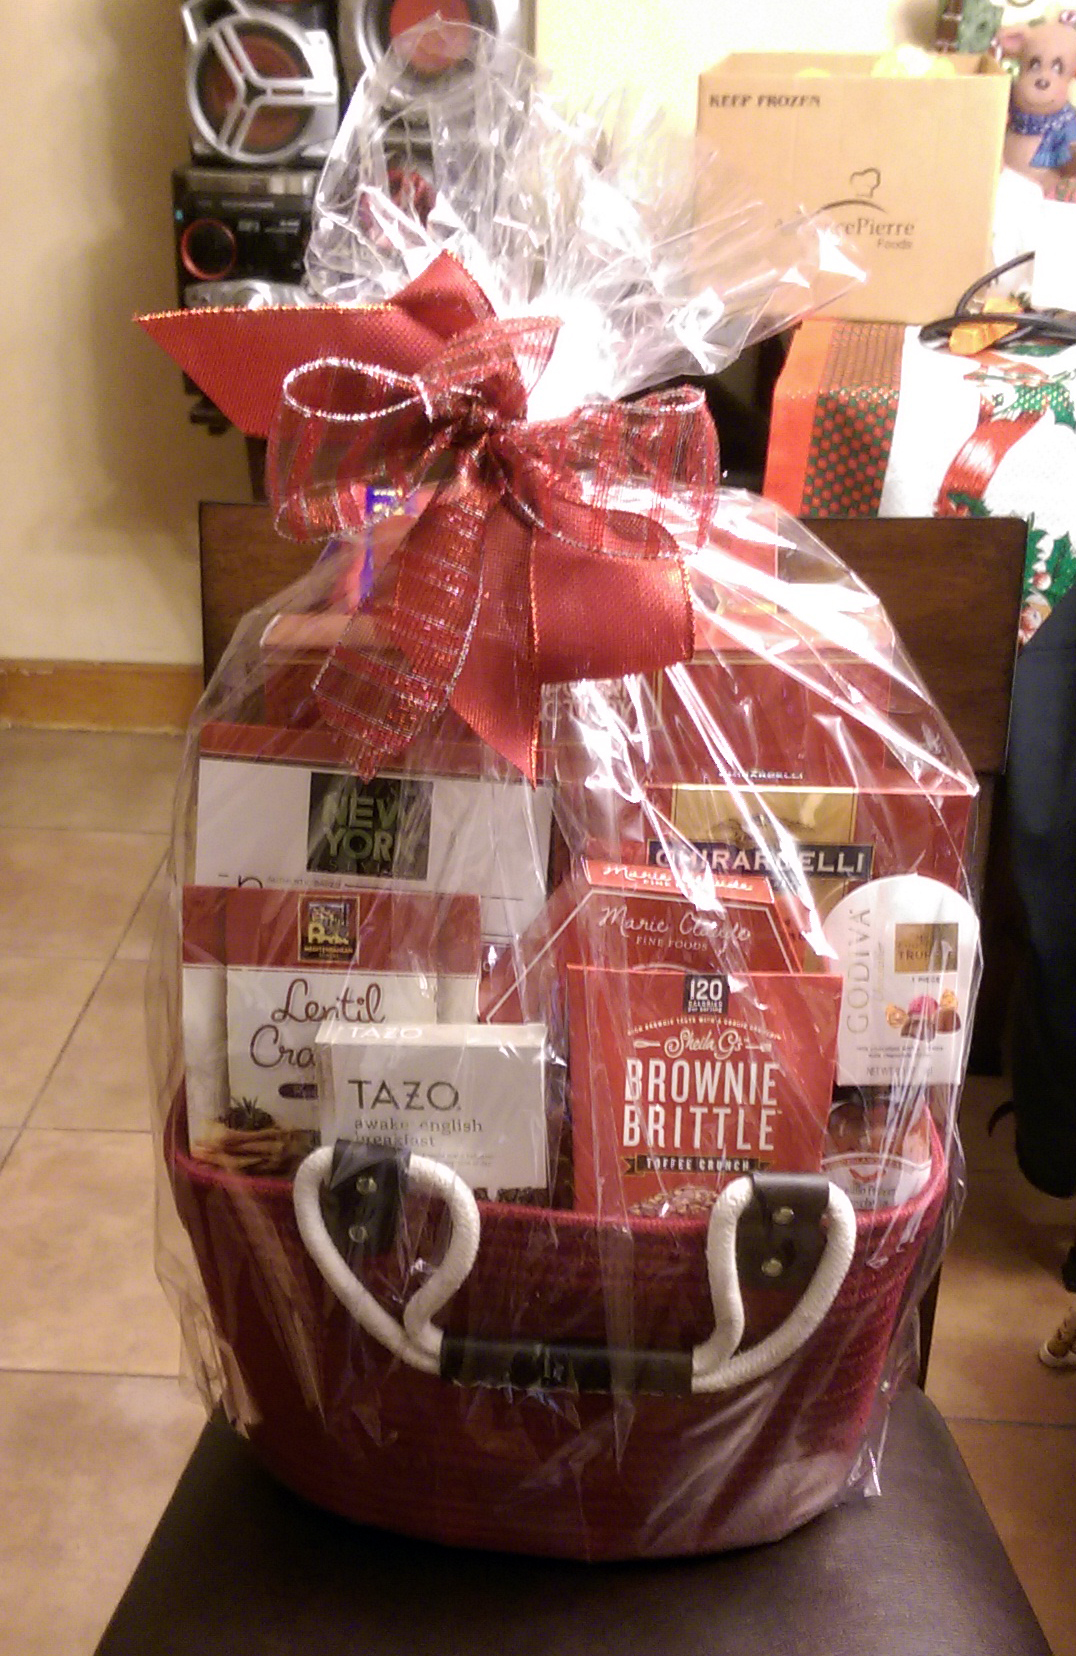 Fernando Rios was the winner of the Christmas basket.